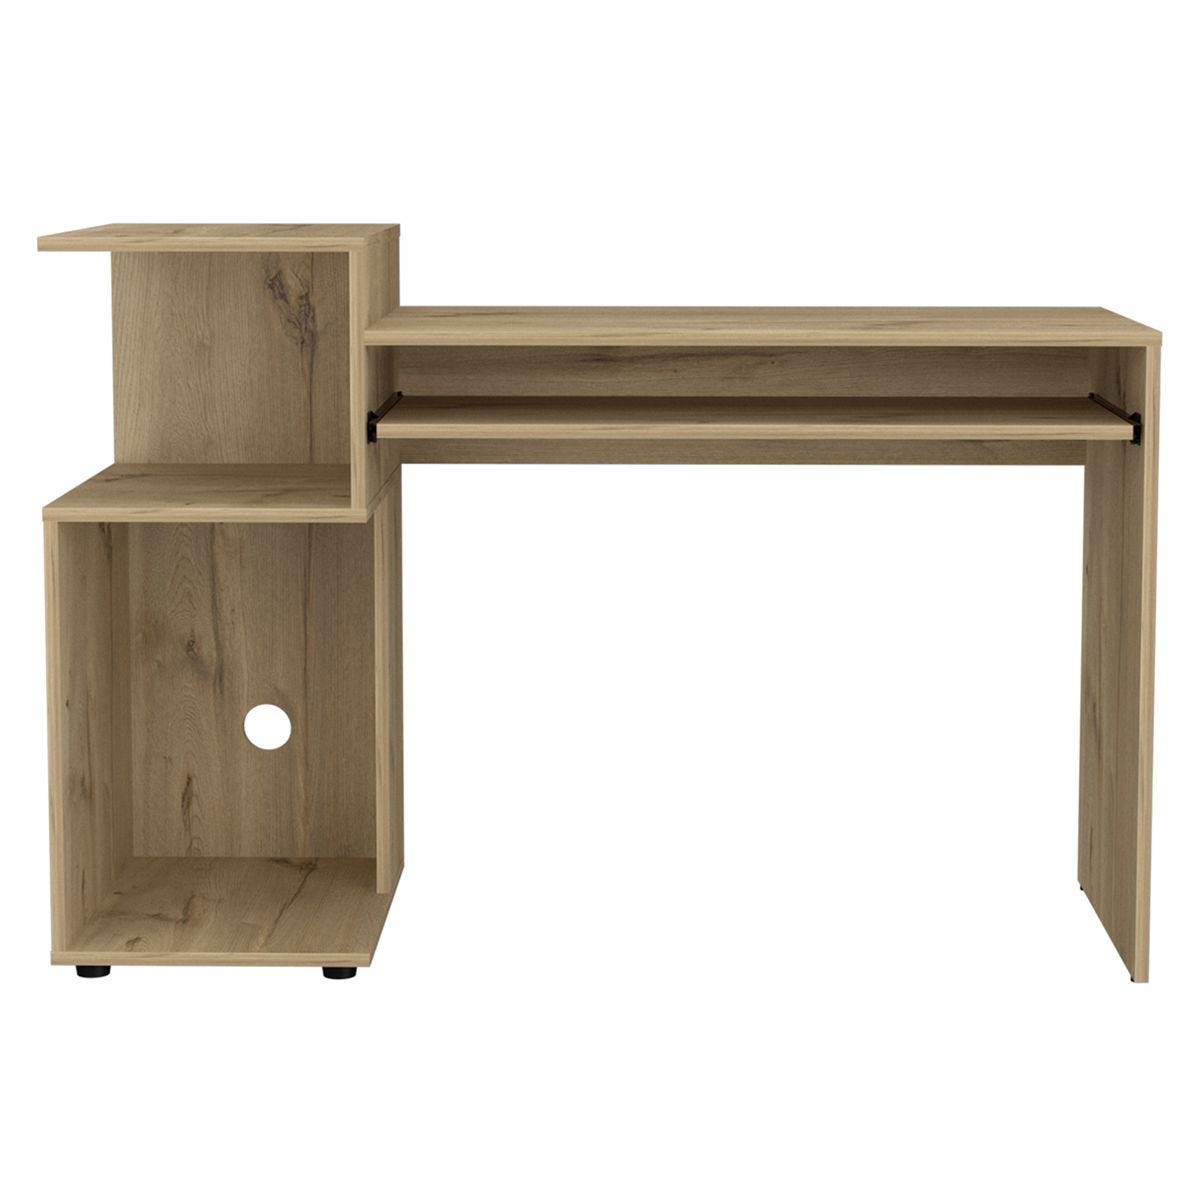 Brooklyn Home Office Desk with Low Shelving Unit (Left Side)